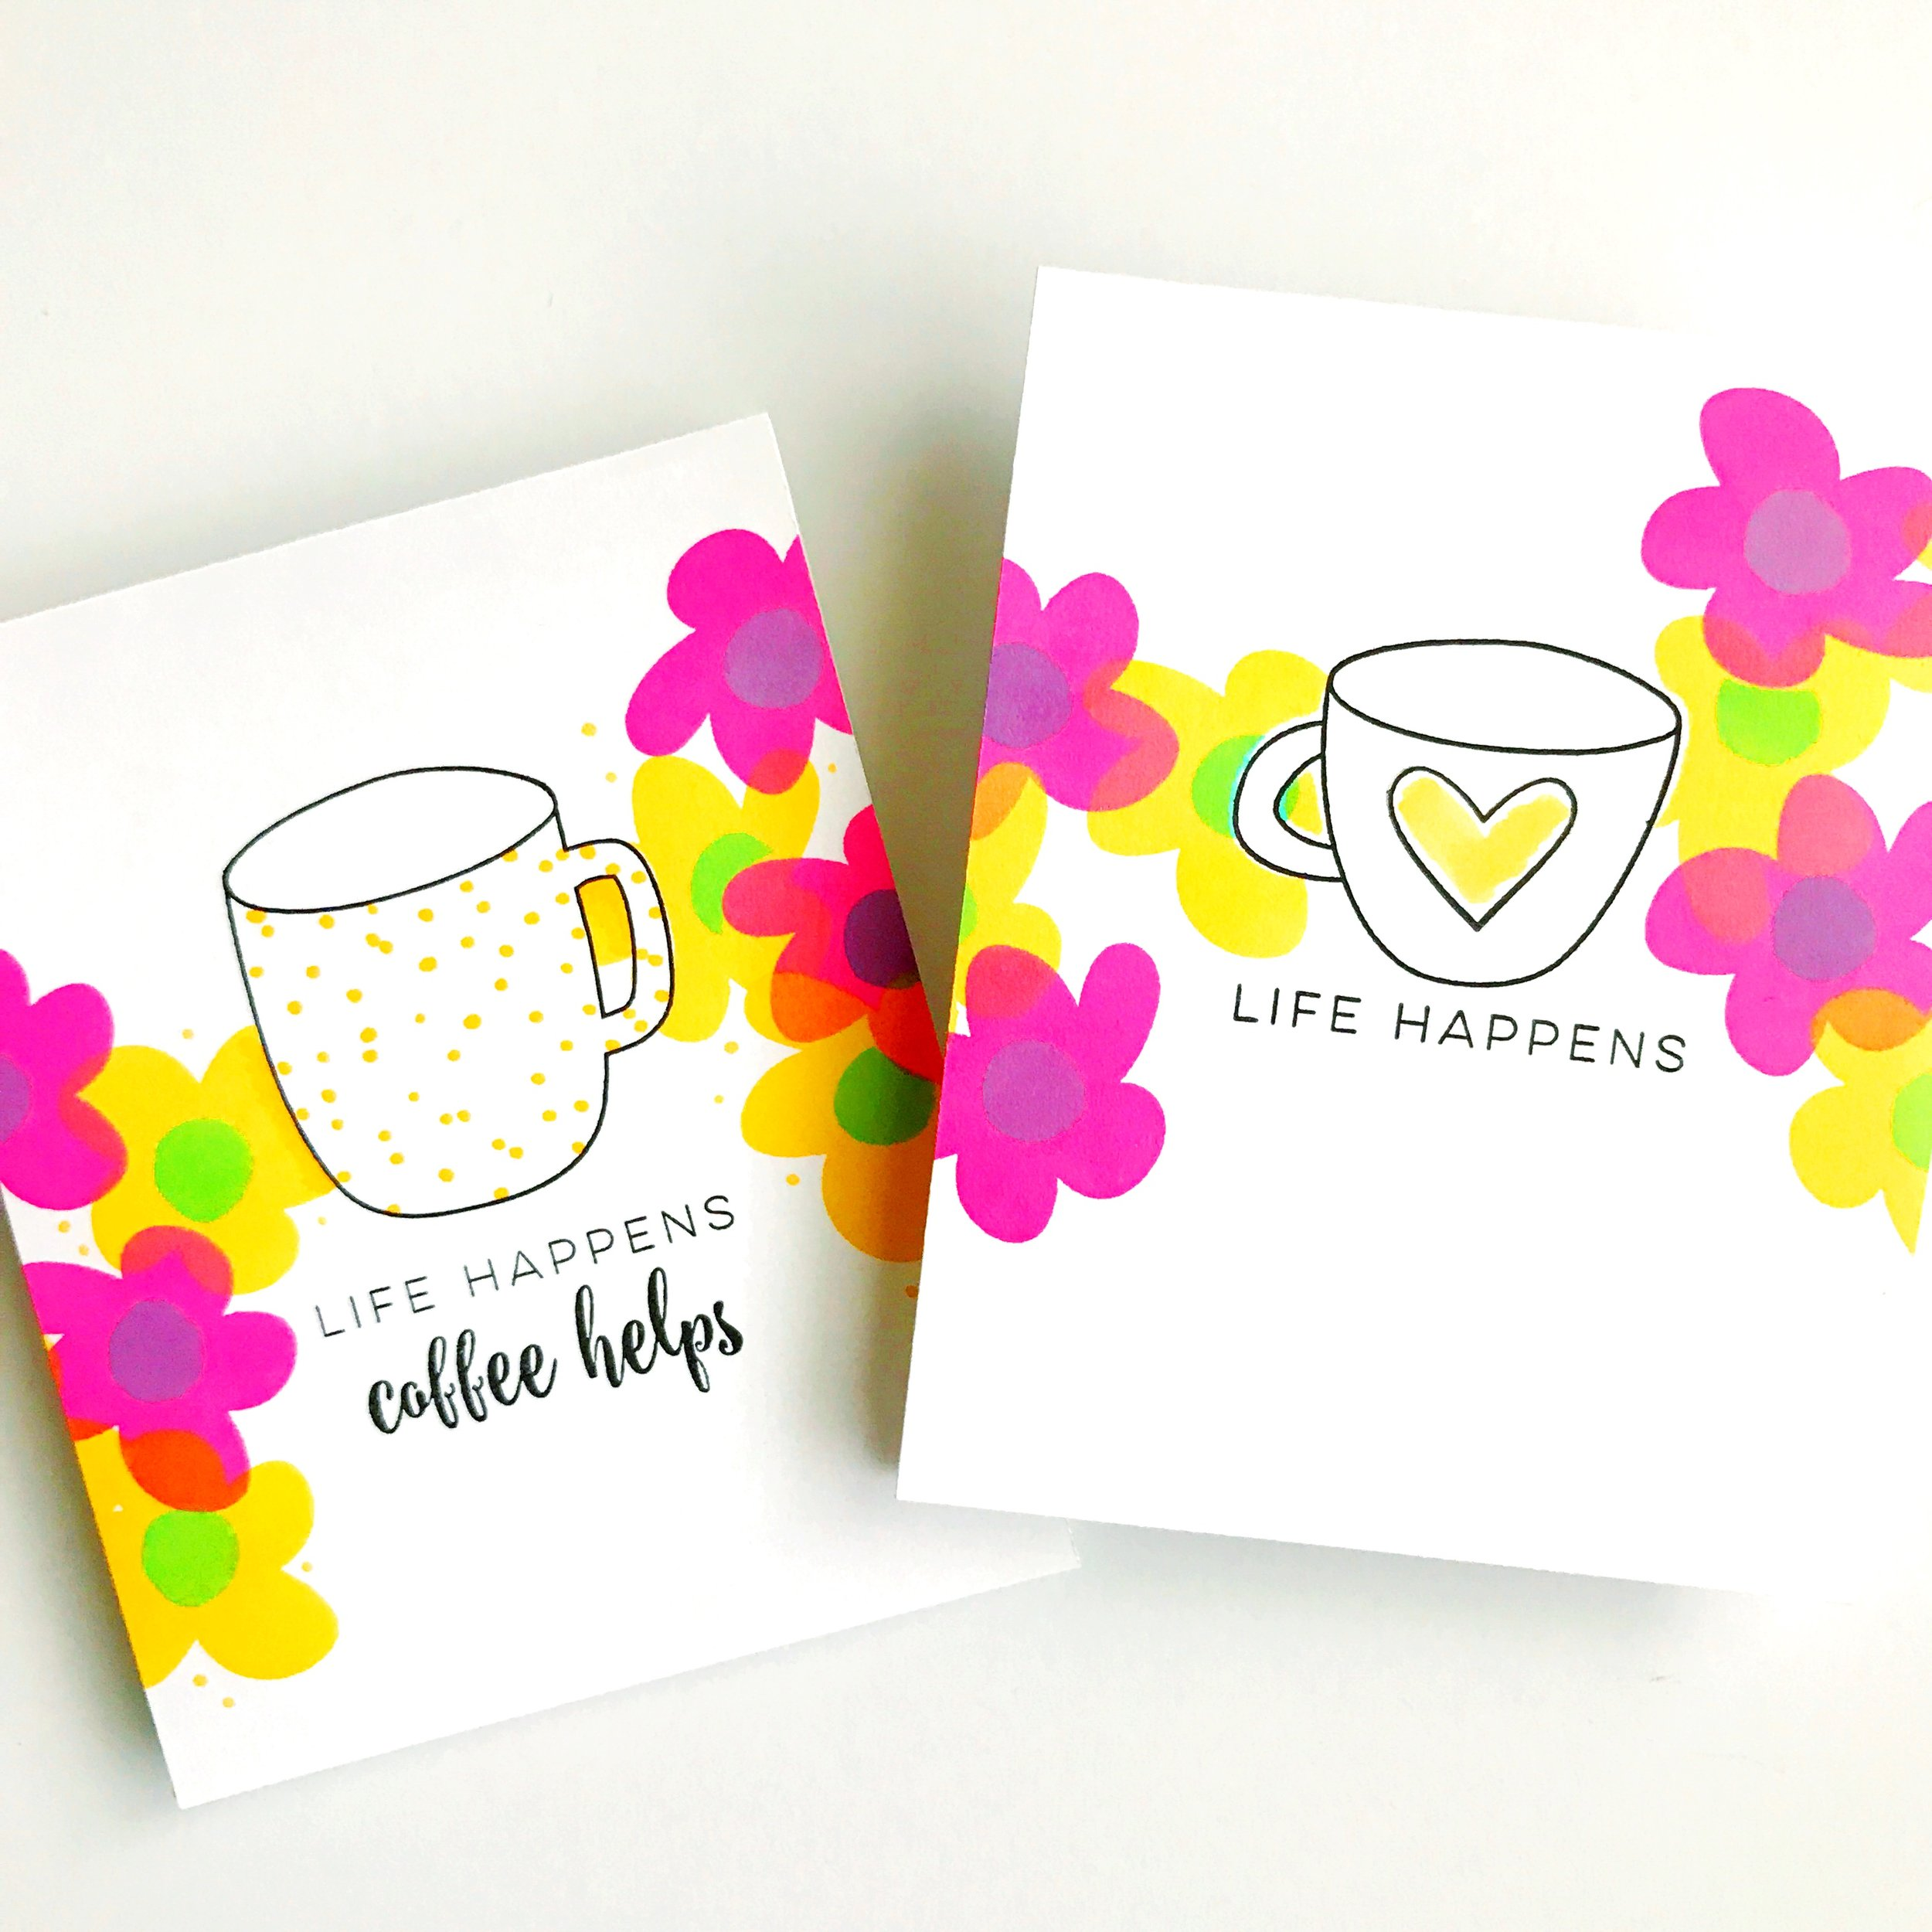 Life Happens Coffee Helps DIY Gift Card Holder Card by Carly Tee // rightathomeshop.com/blog